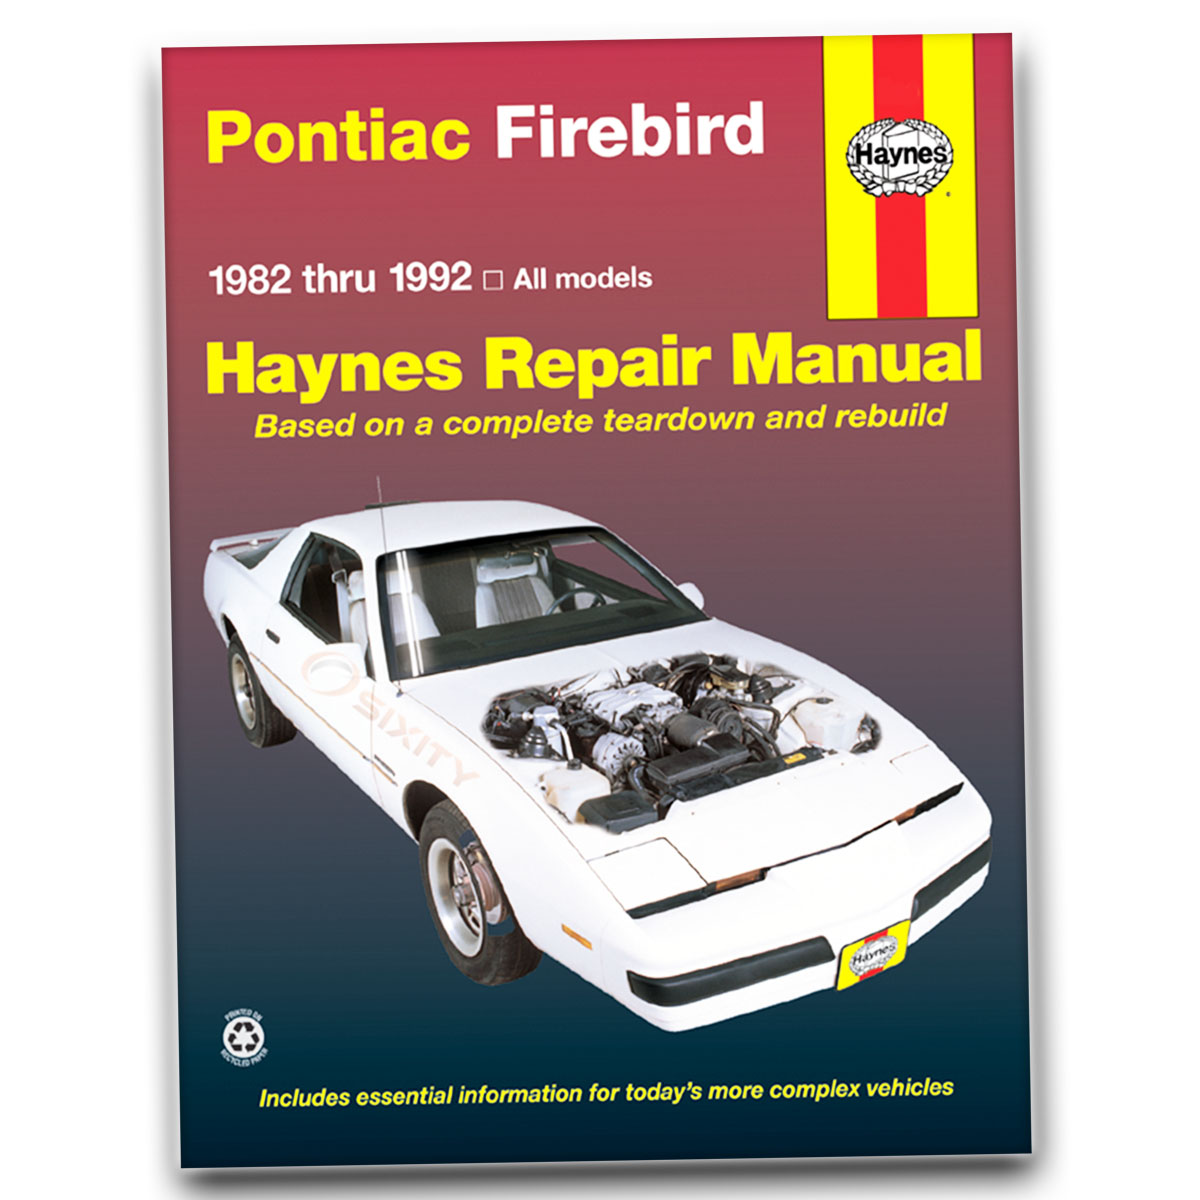 pontiac firebird haynes repair manual trans am gta base formula se s rh ebay com Haynes Repair Manual 1991 Honda Civic Haynes Repair Manual Online View